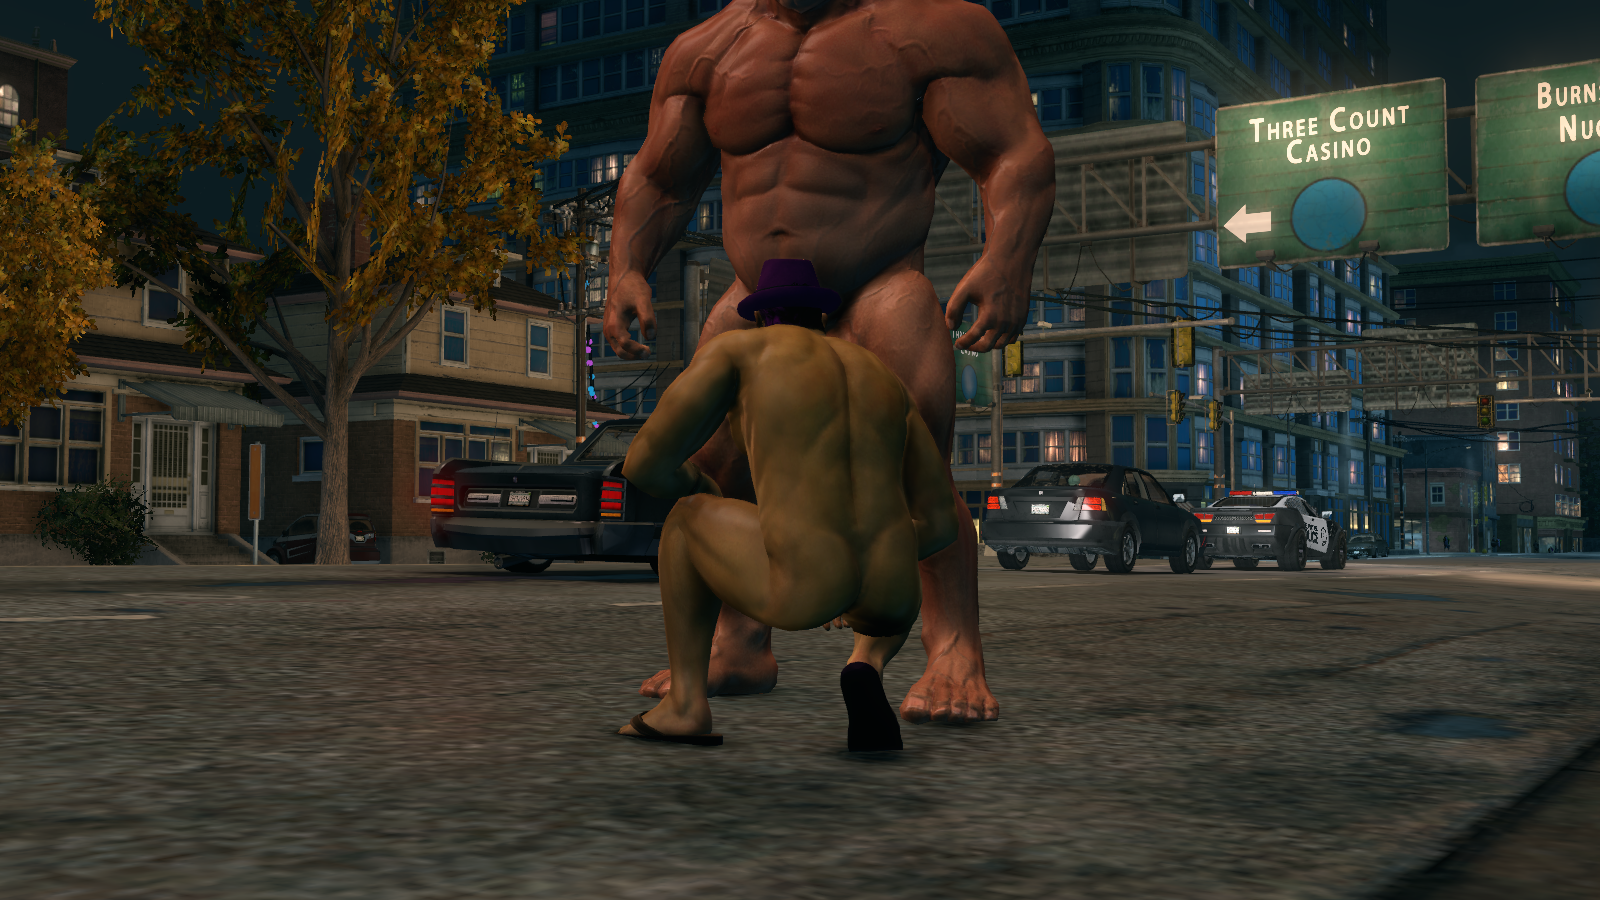 Saints row the third male nude mod porn comics